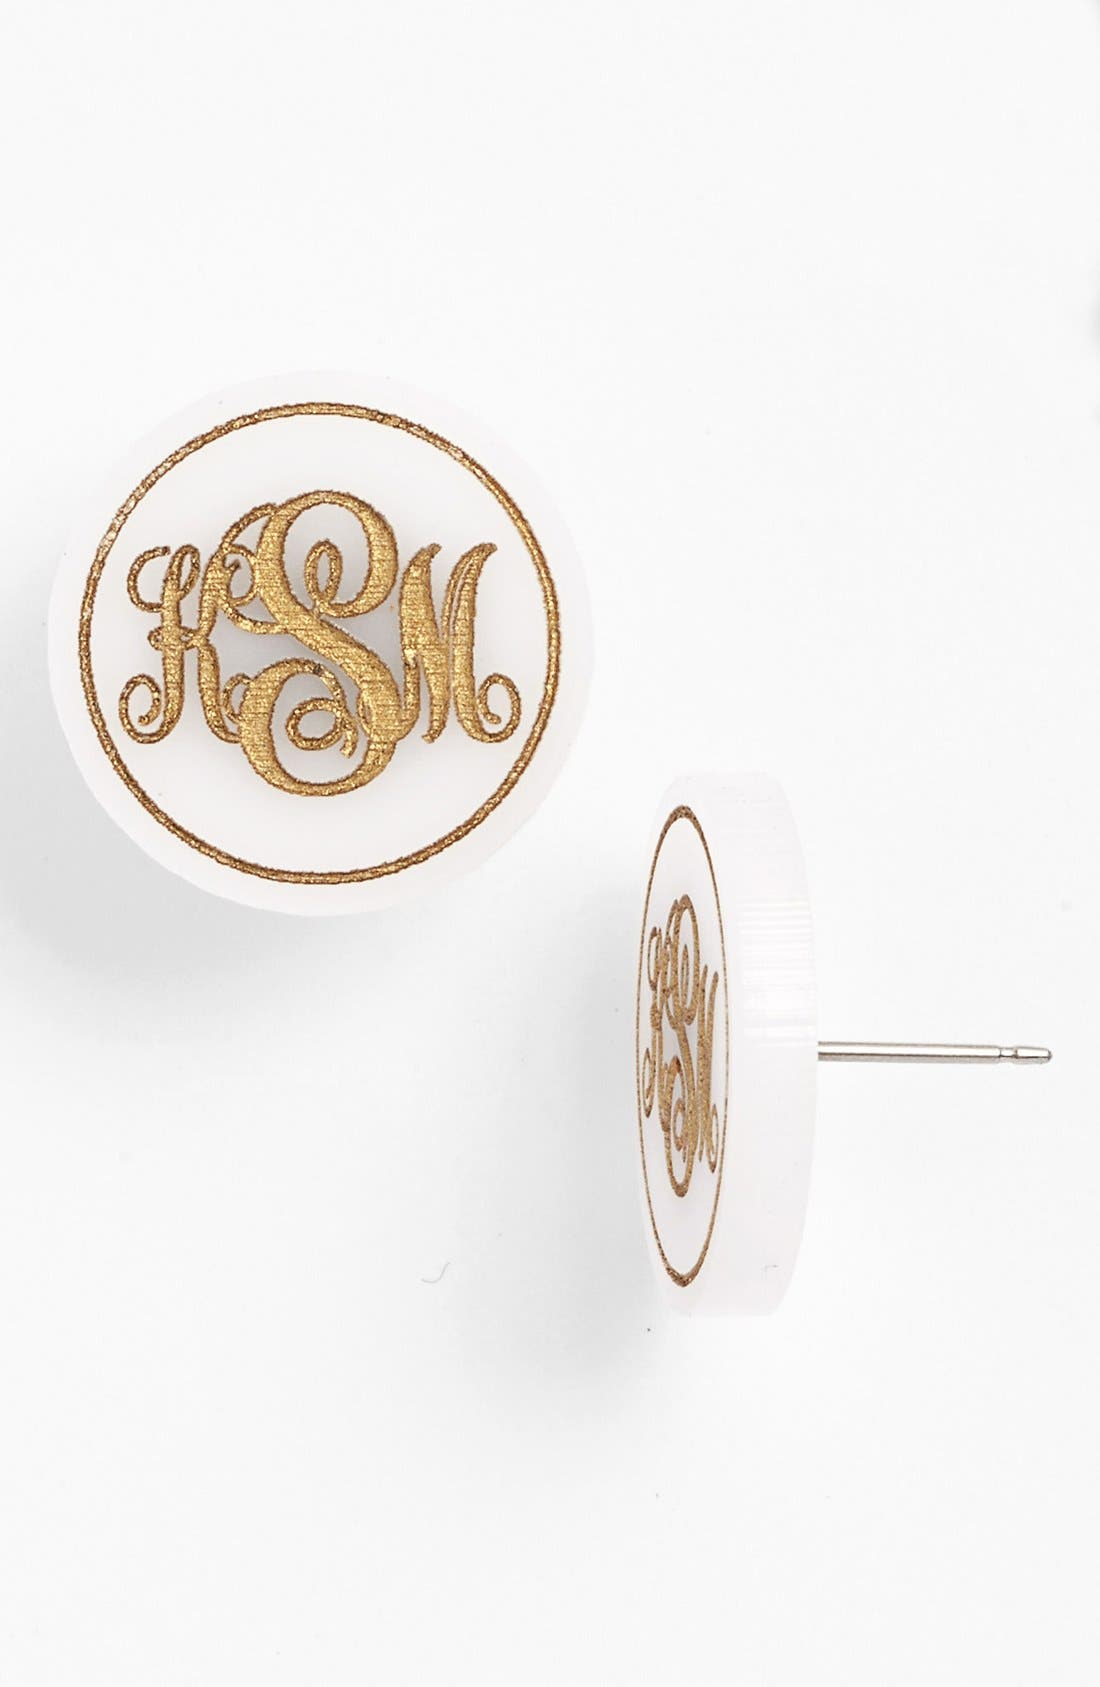 MOON AND LOLA 'Chelsea' Medium Personalized Monogram Stud Earrings, Main, color, SNOW/ GOLD